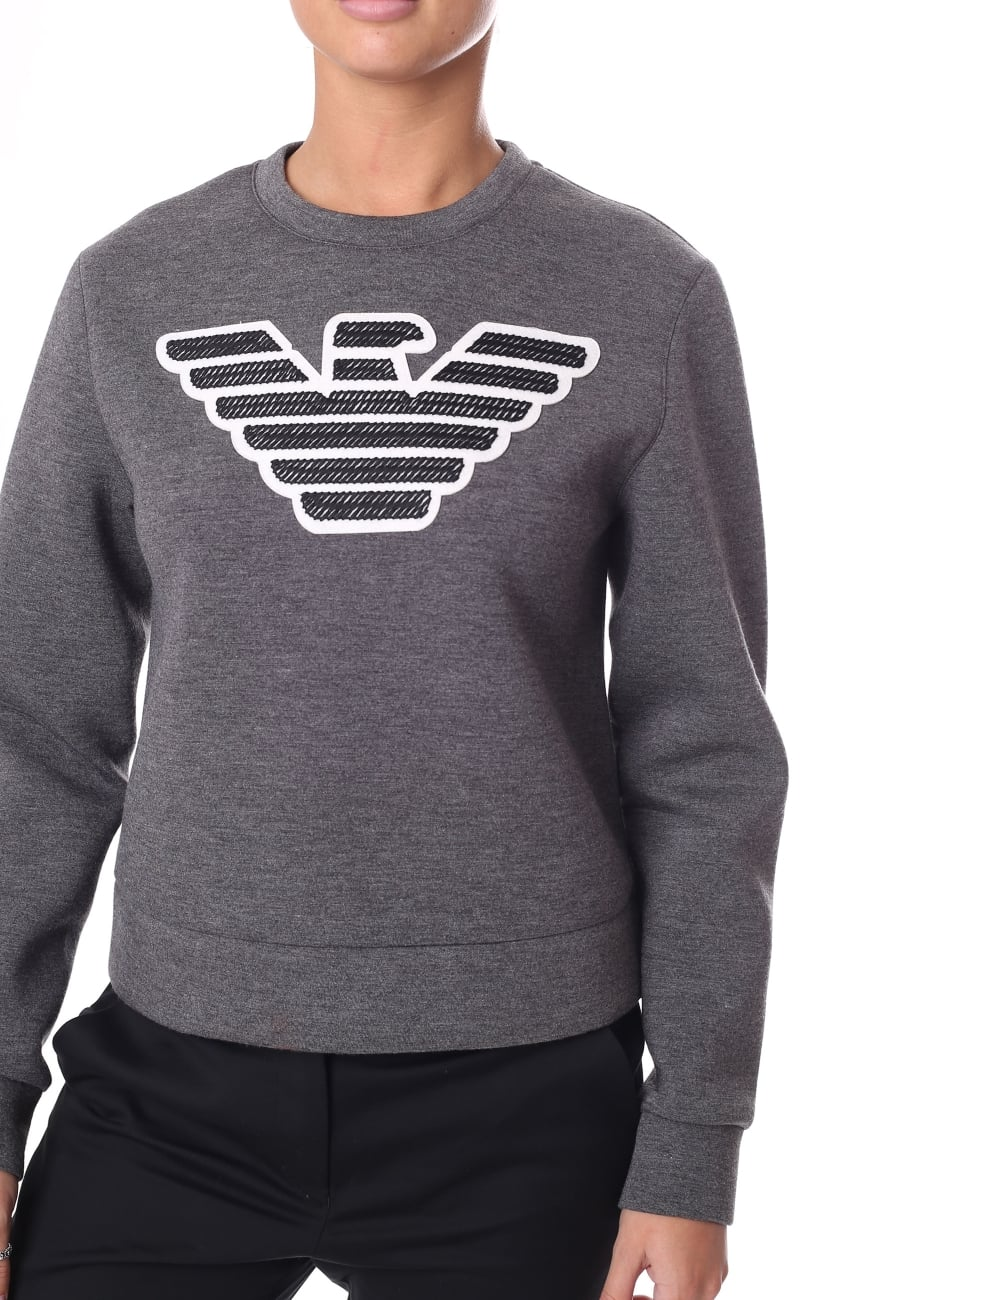 a0270e35f Women's Eagle Logo Crew Neck Sweat Top